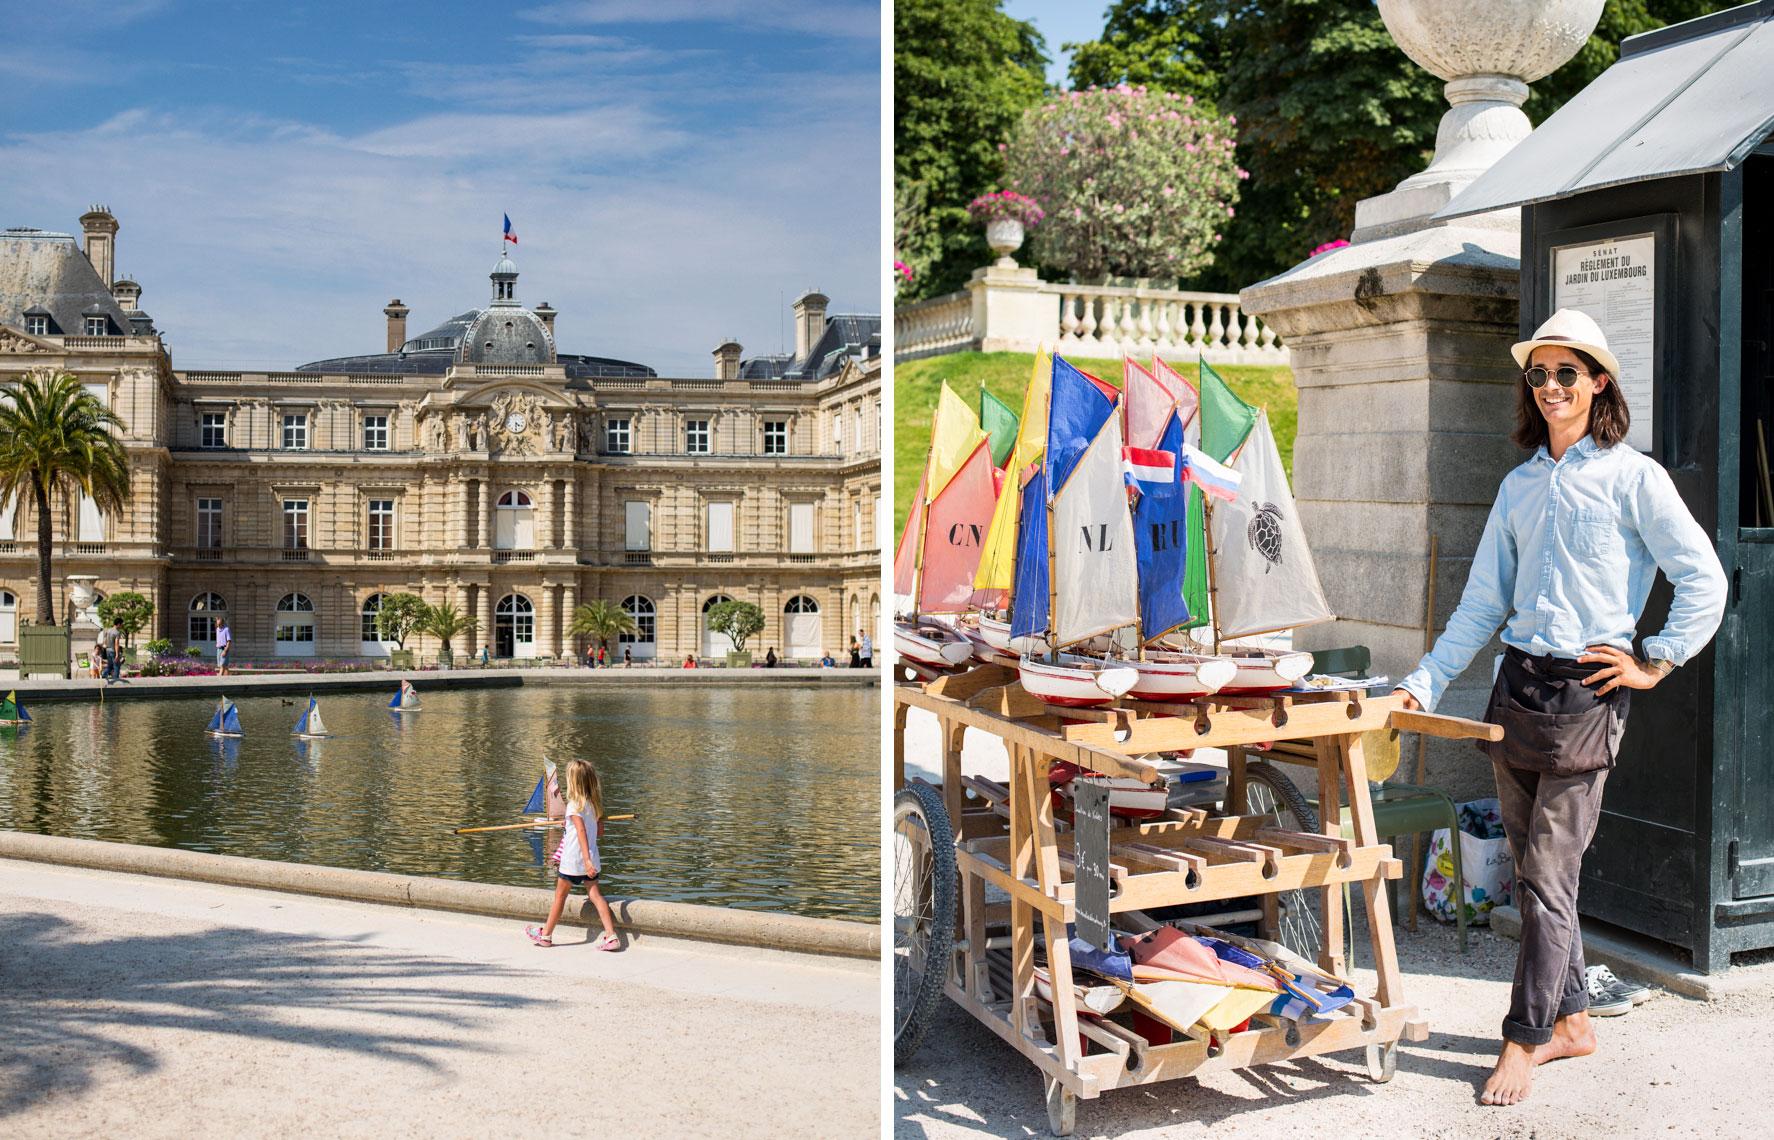 Luxembourg Garden boats